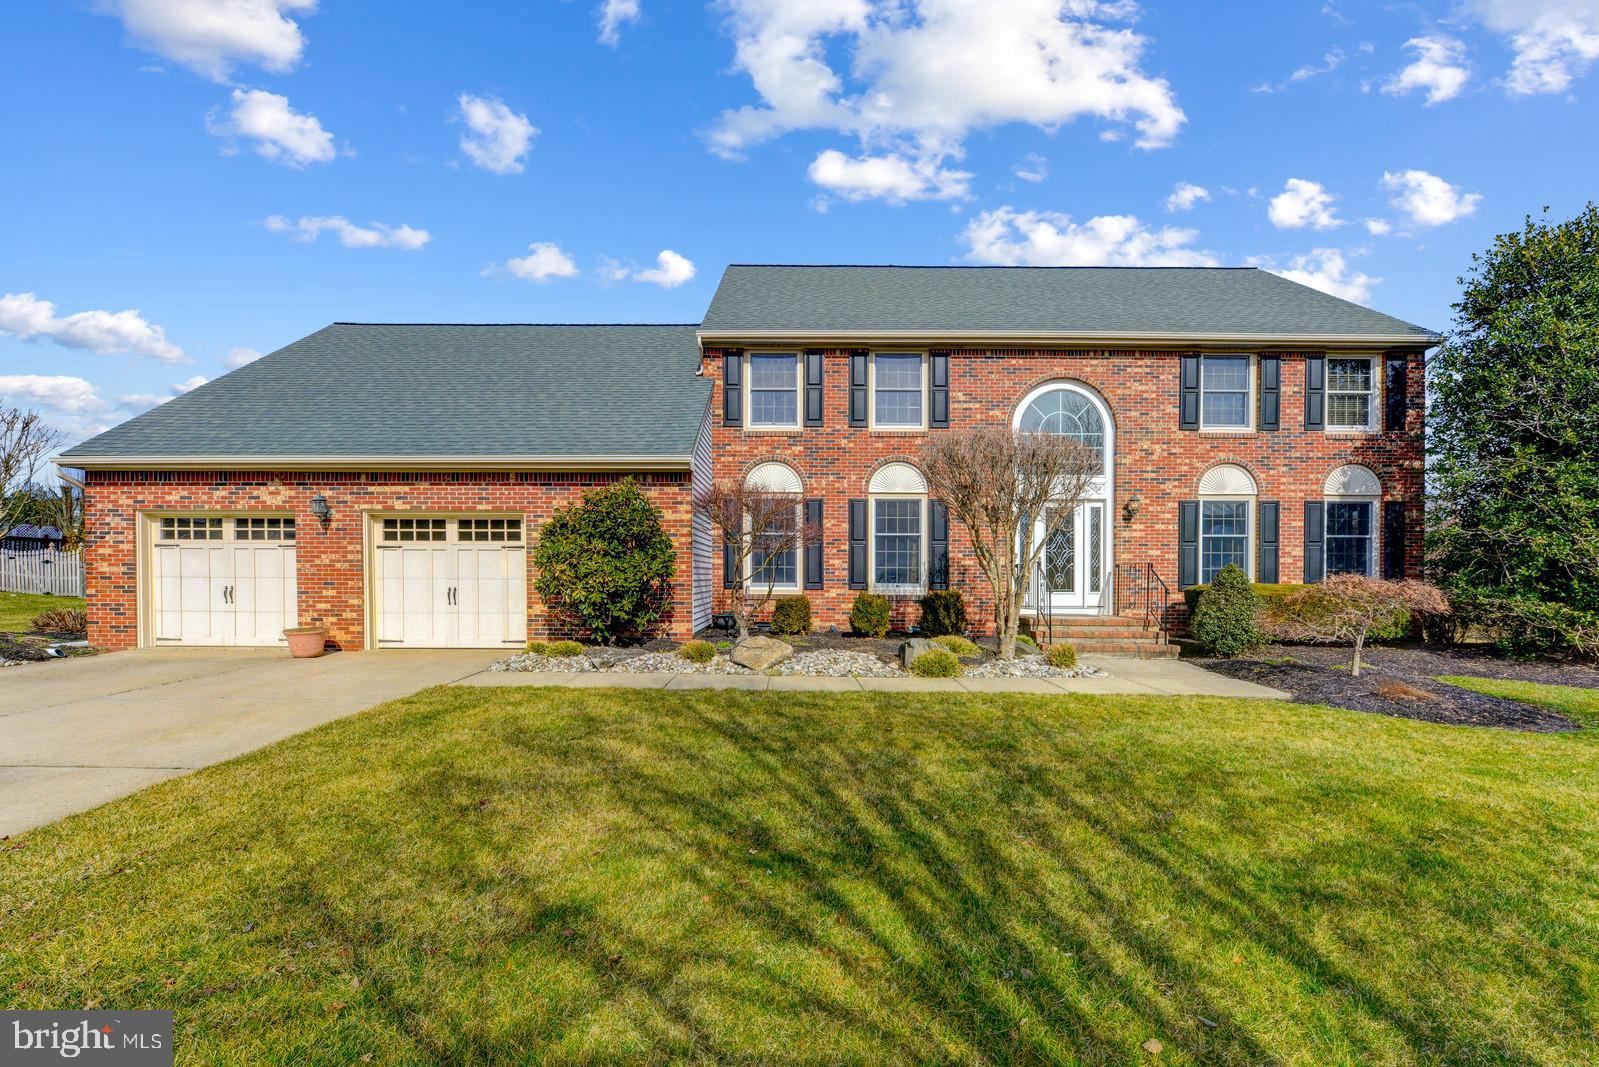 38 WAVERLY PLACE, MONMOUTH JUNCTION, NJ 08852